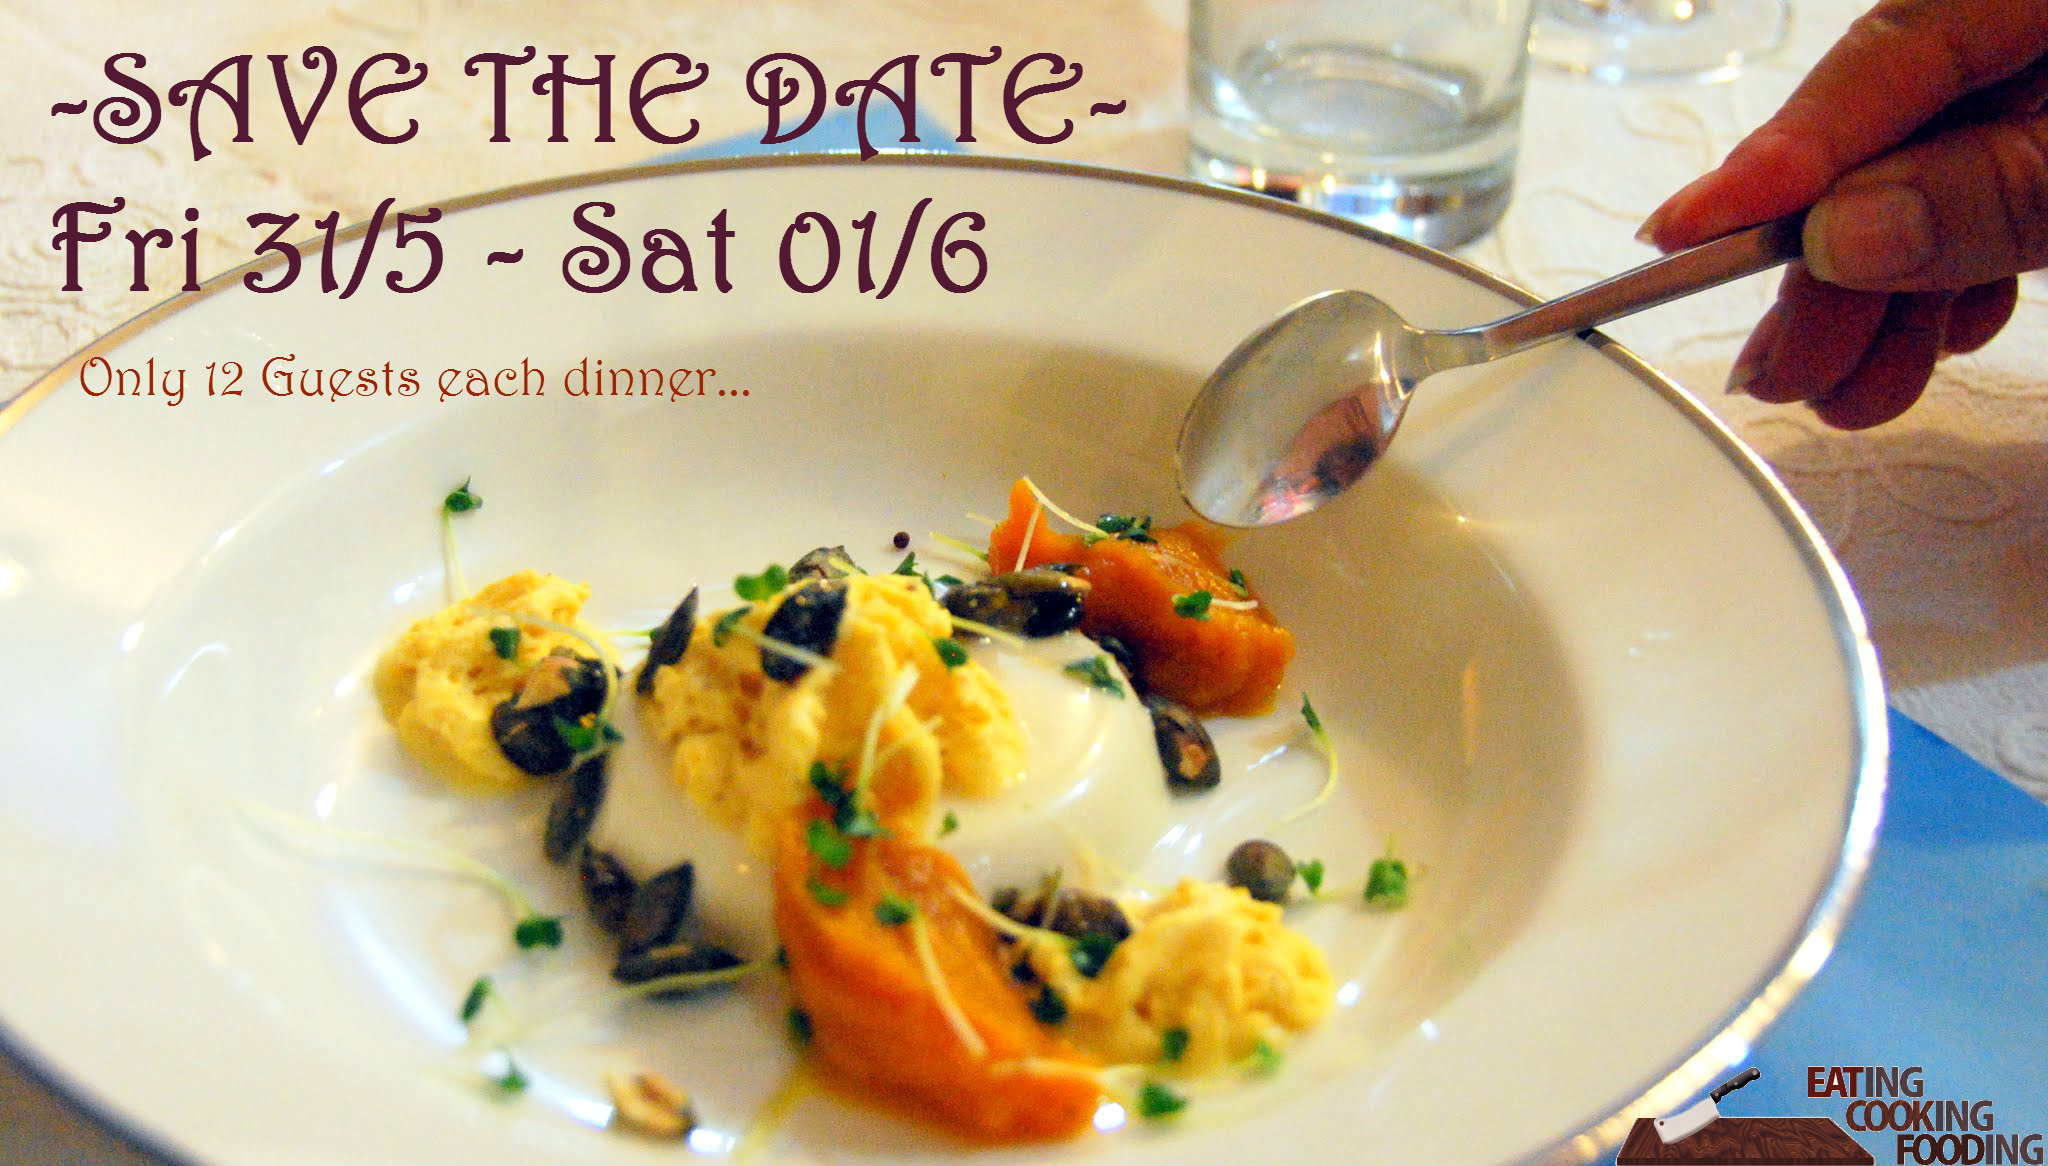 save the date may dinner